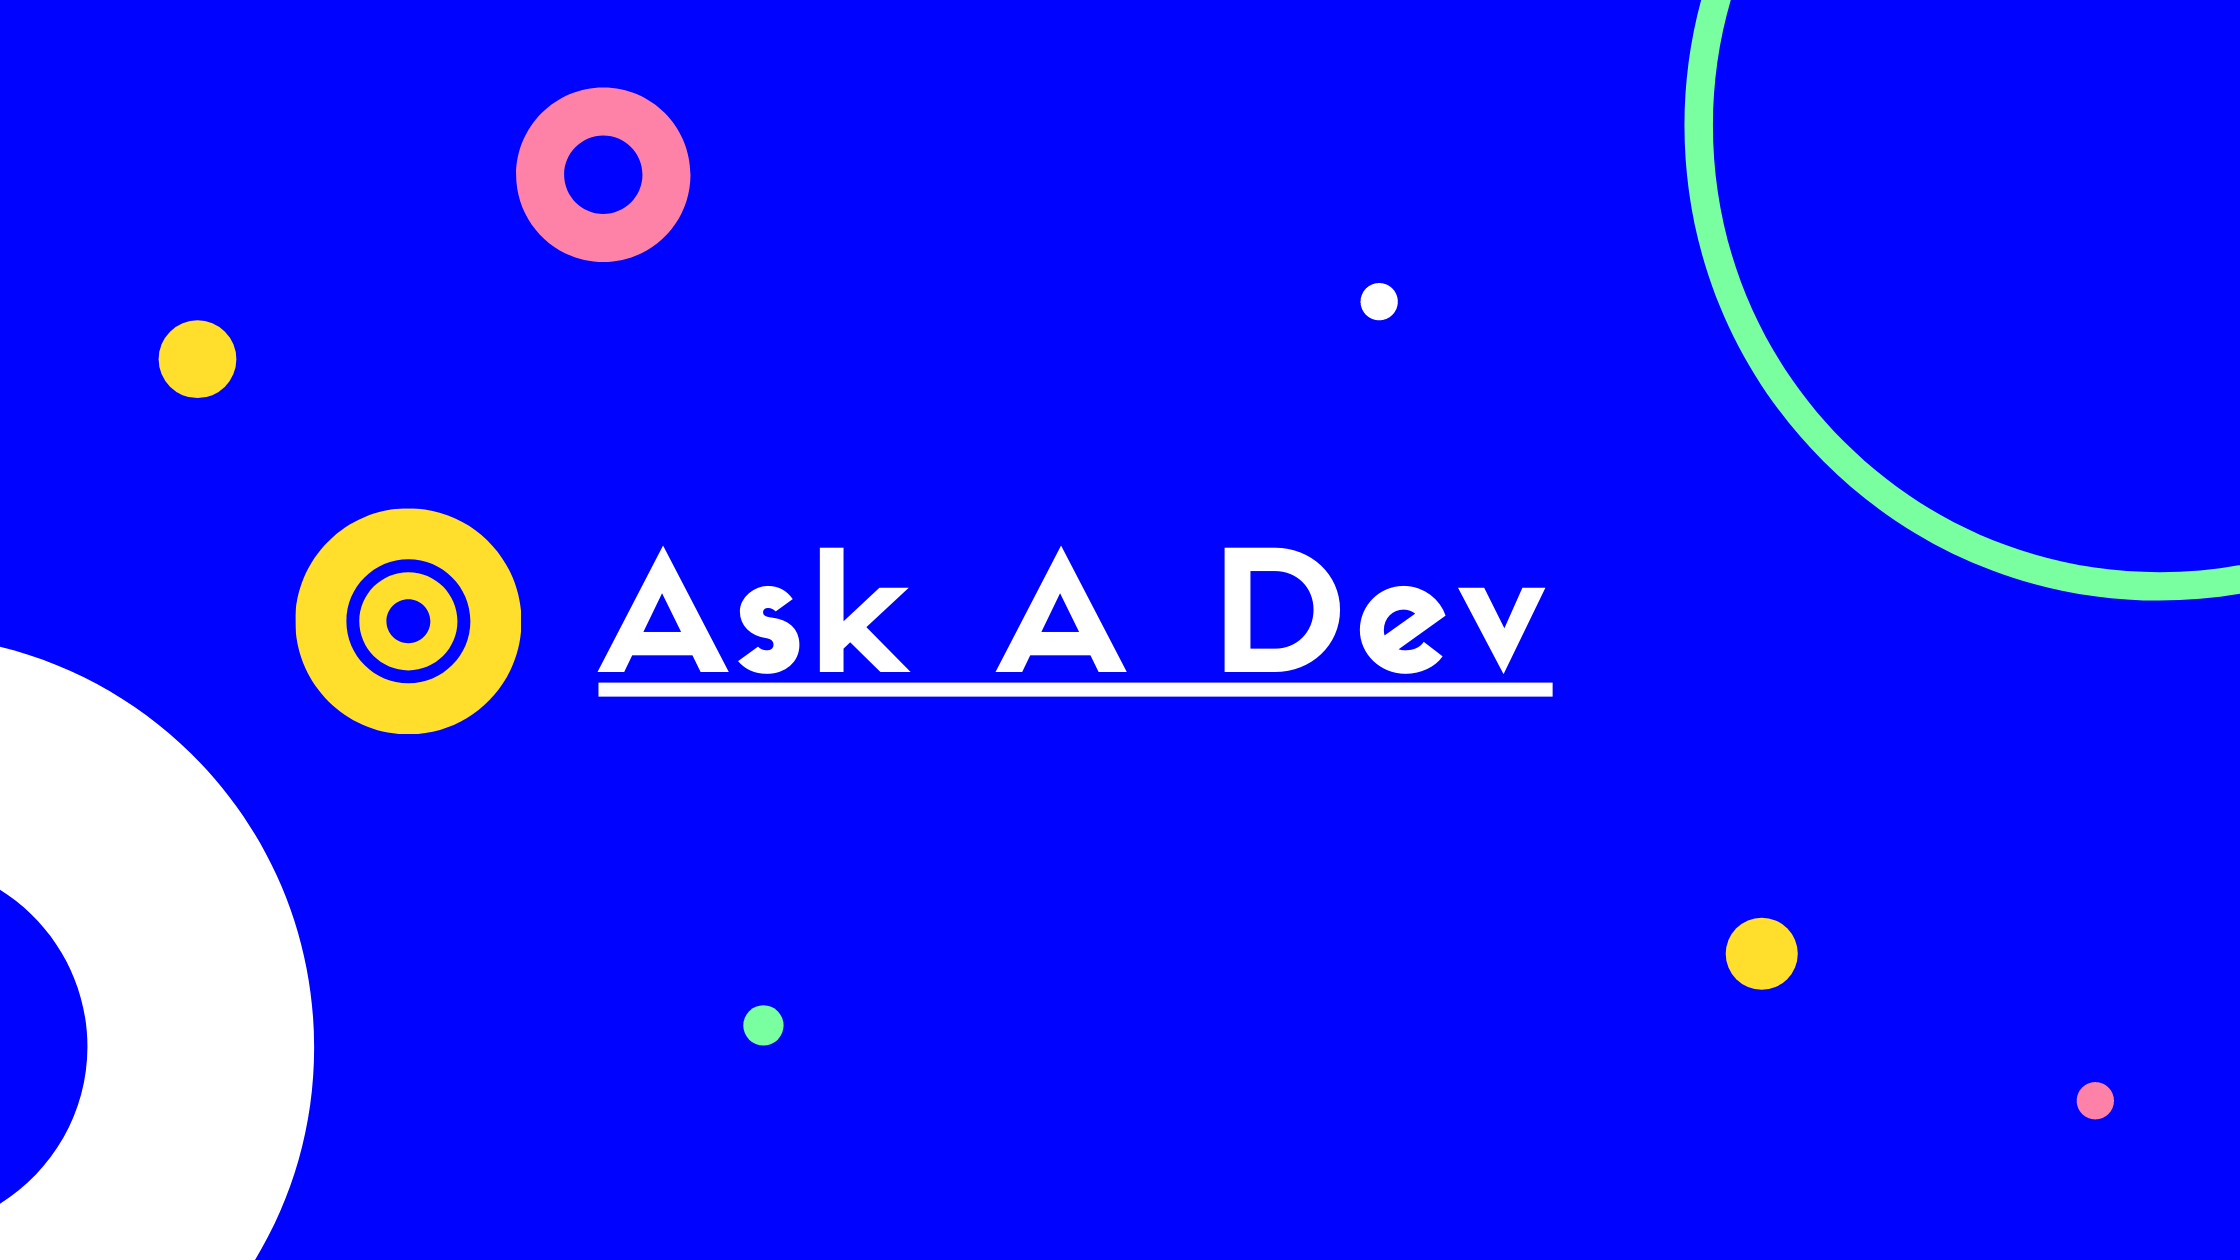 Image of the Ask A Dev